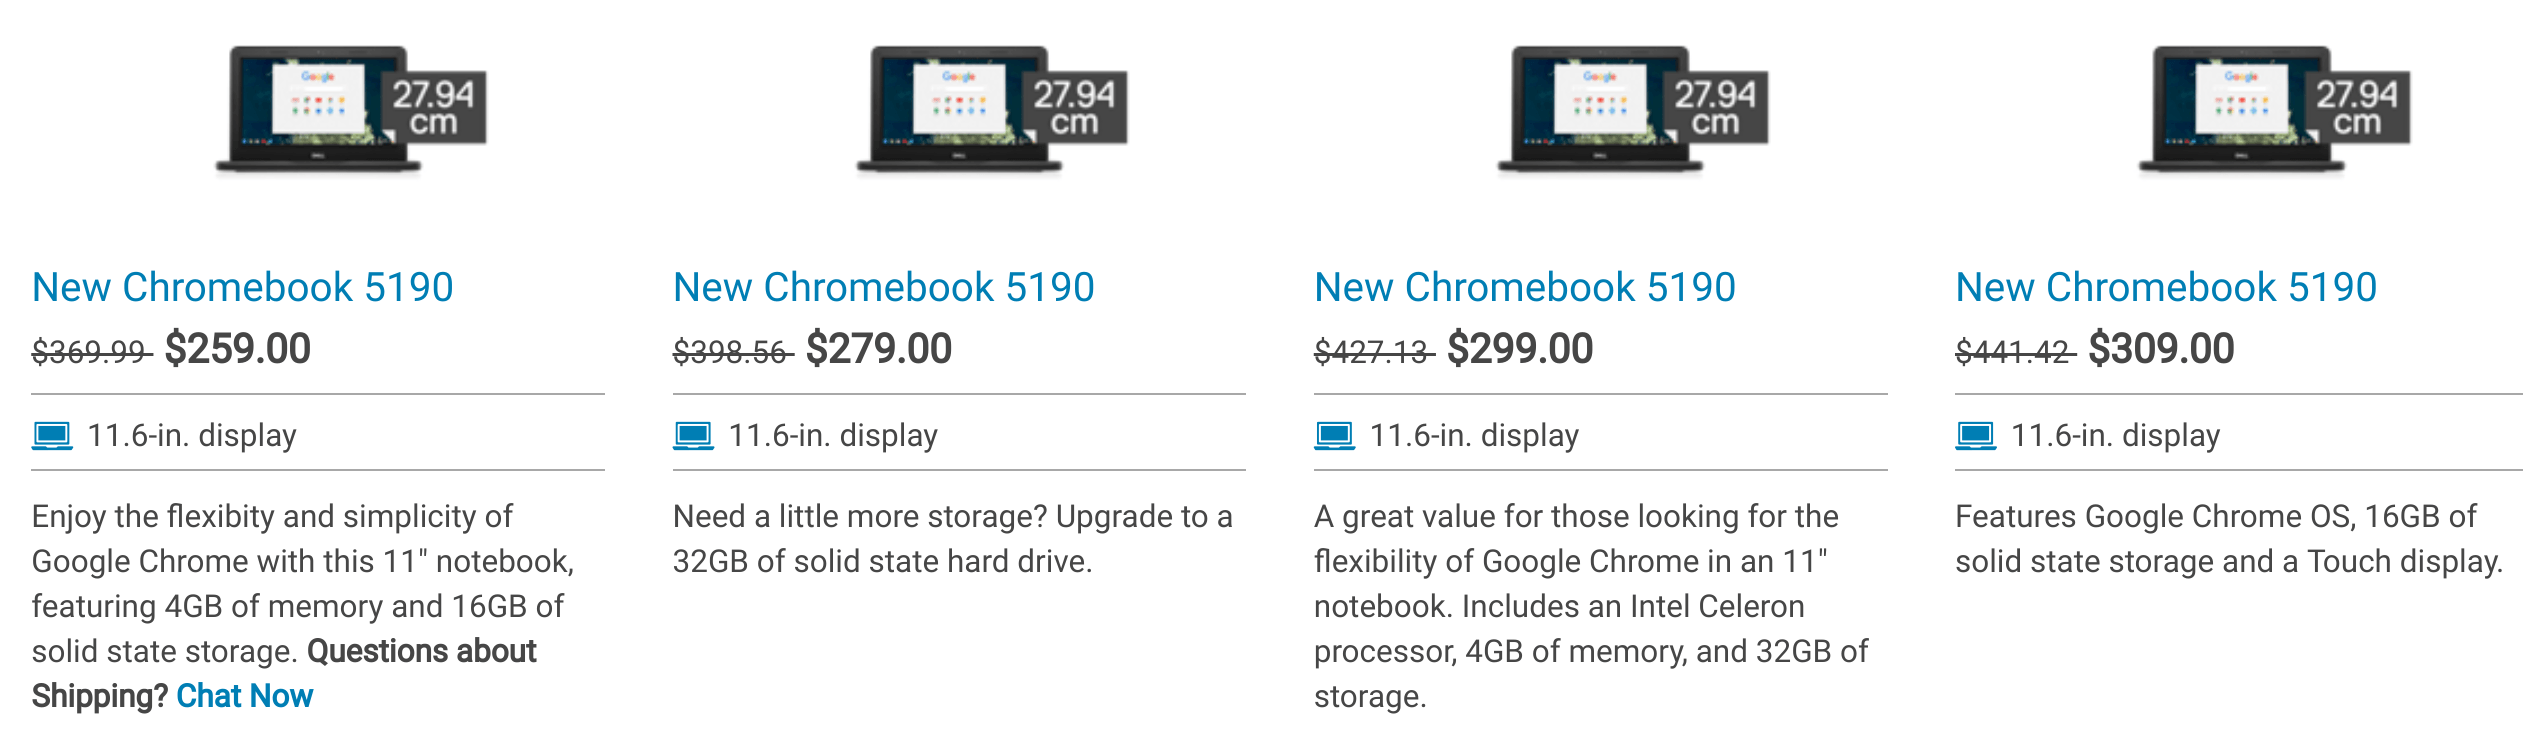 Dell 5190 Chromebook – About Chromebooks